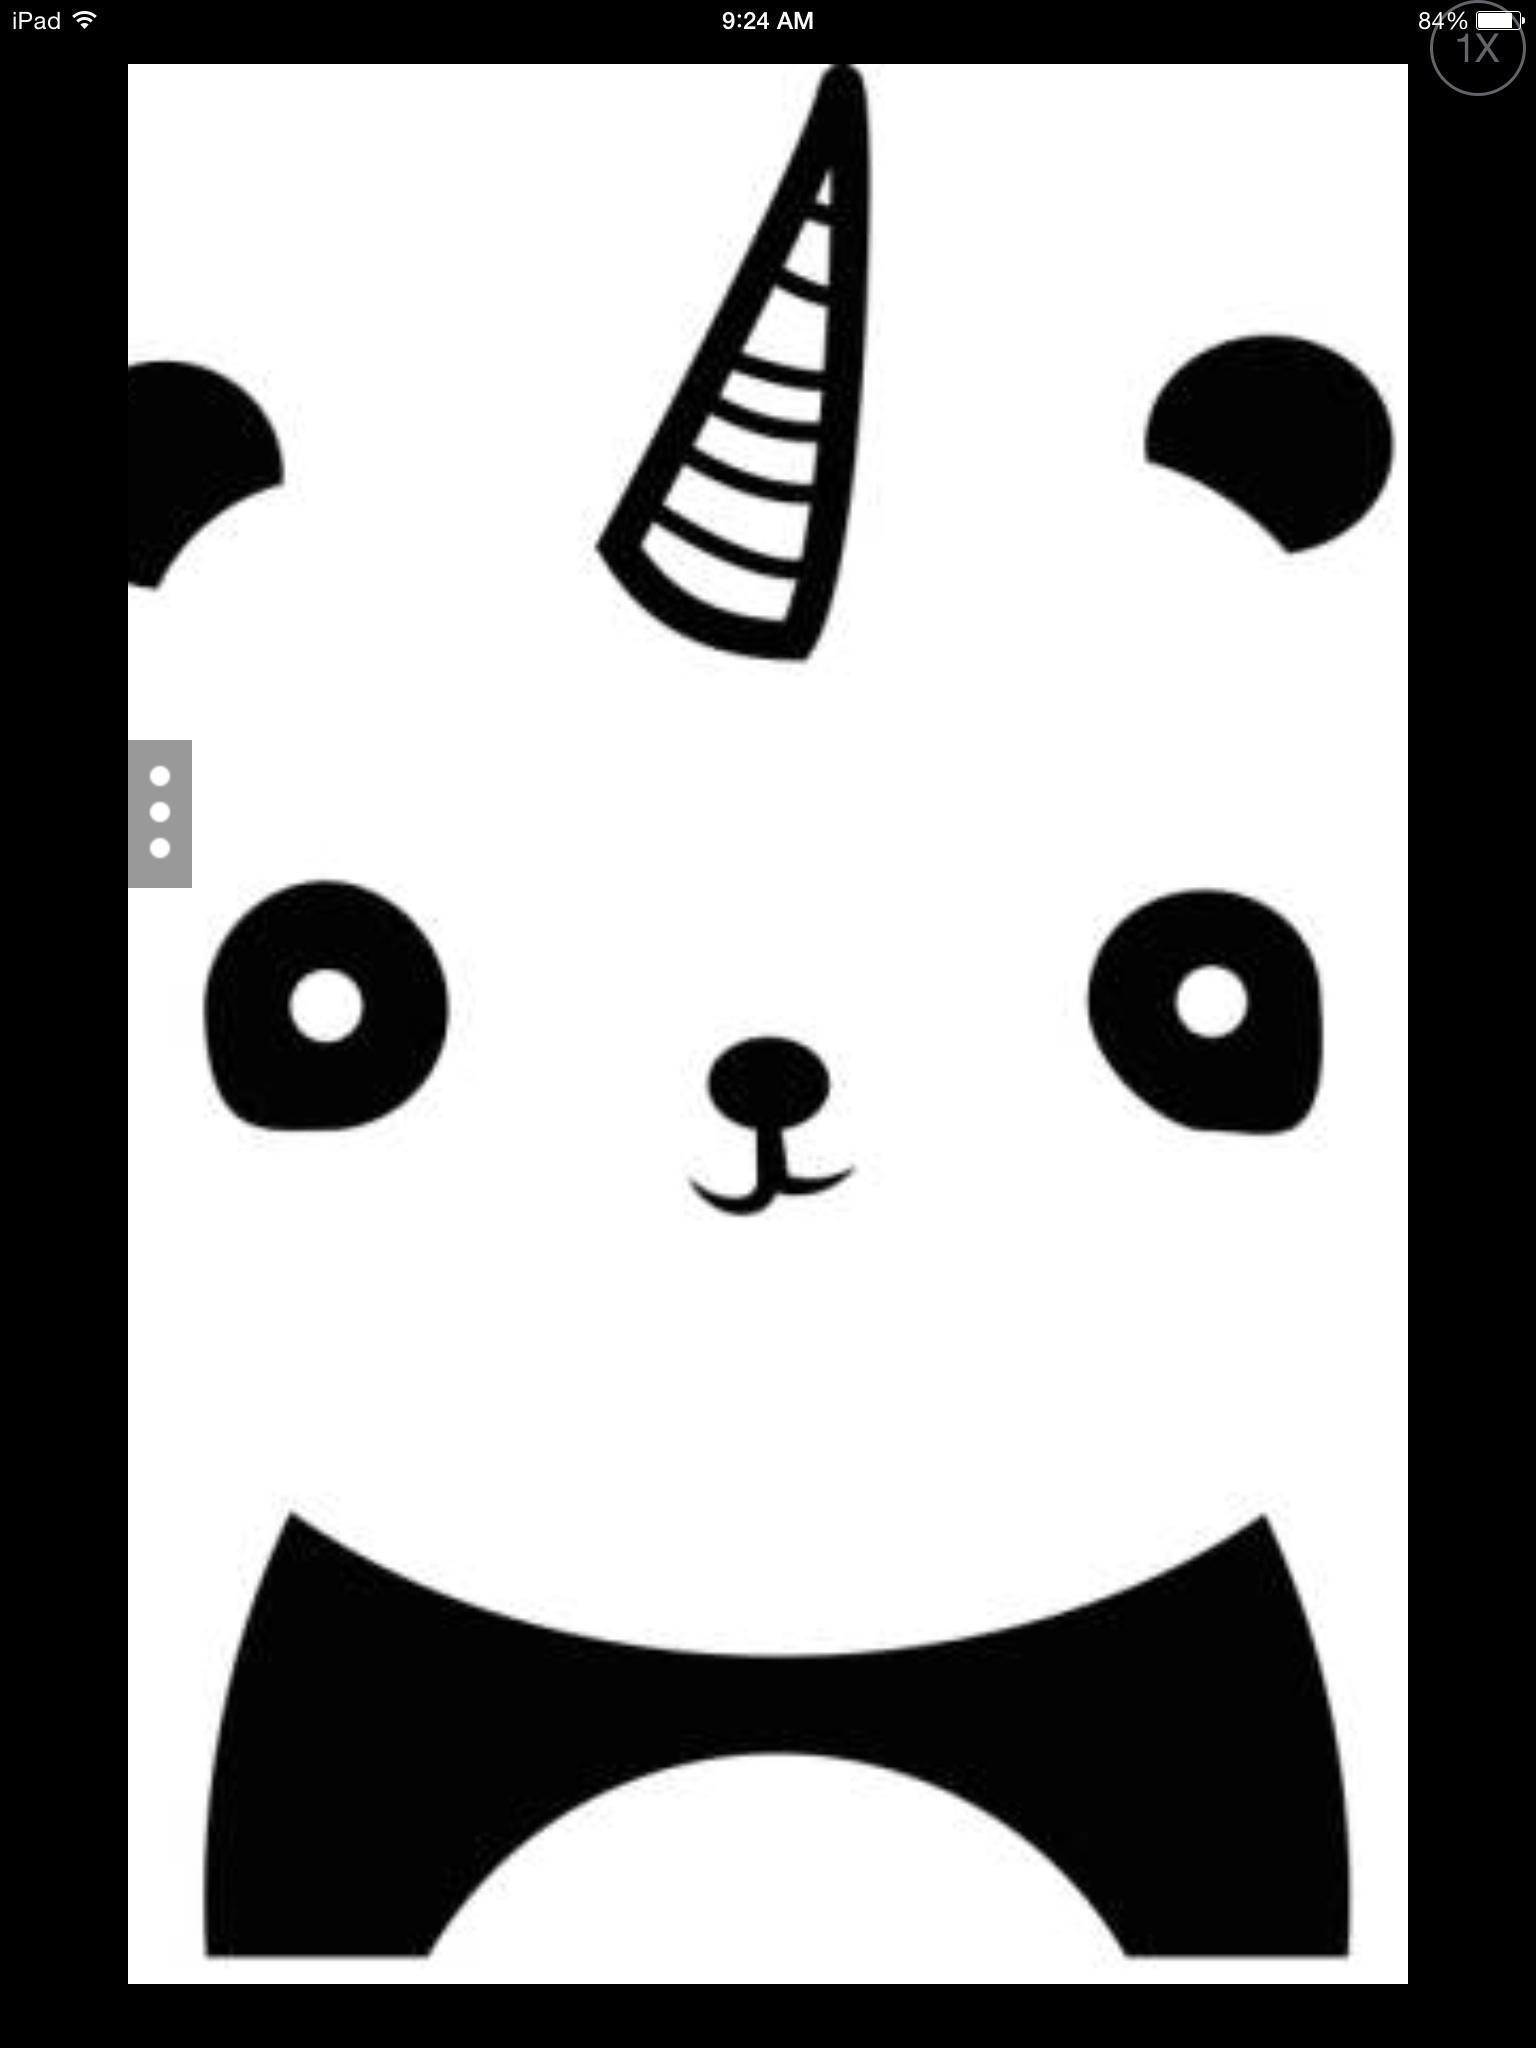 Do you love pandas or unicorn best?